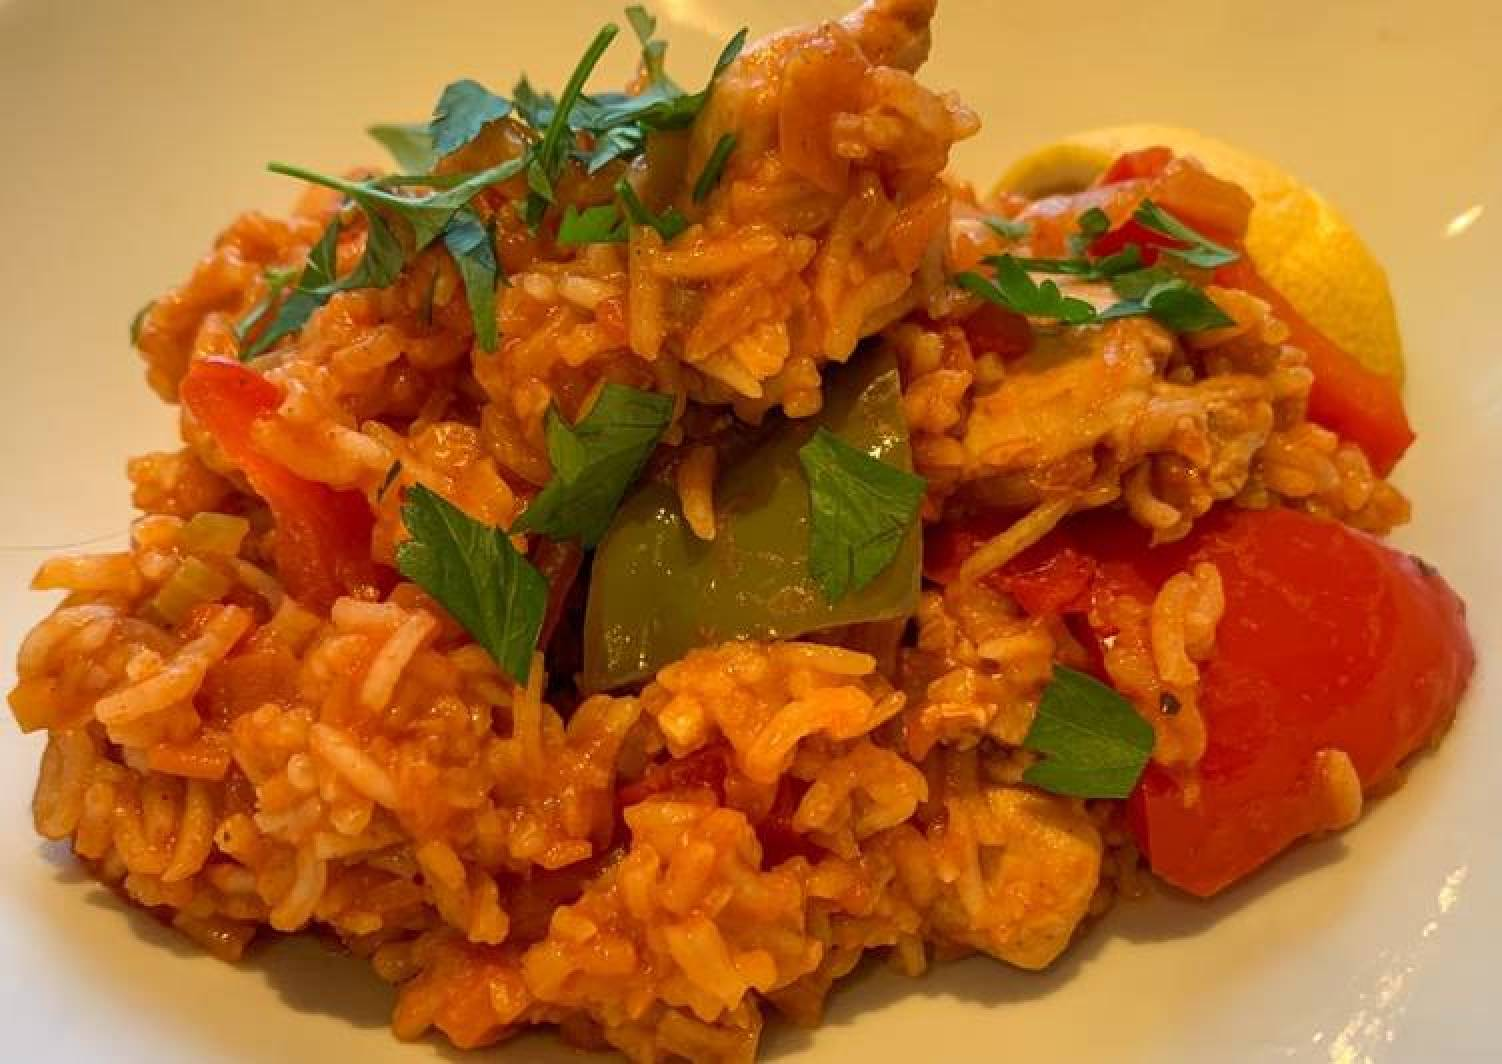 Spanish style tomato and chicken baked rice